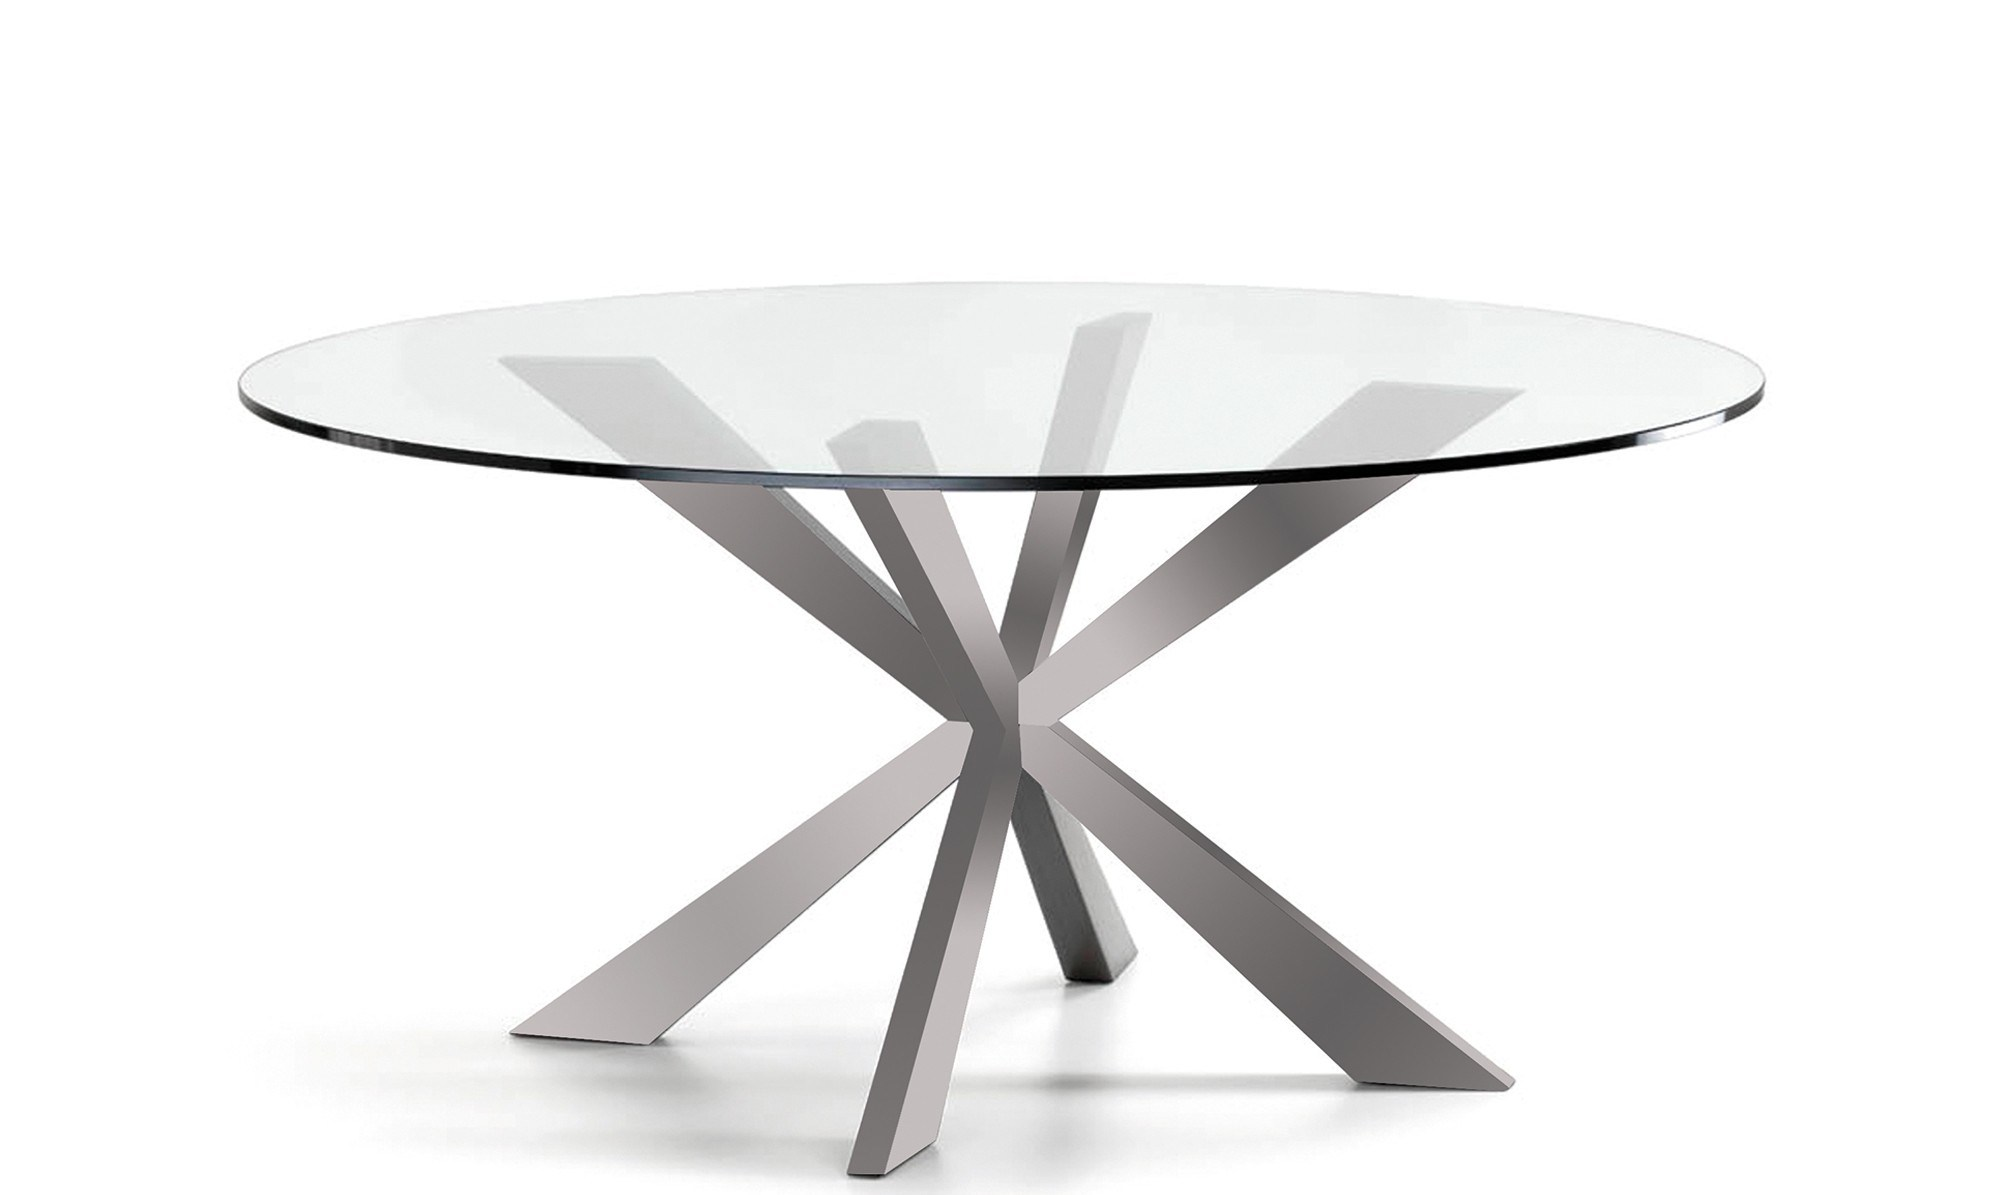 Modern Round Stainless Steel Metal Glass Dining Table With Cross Legs